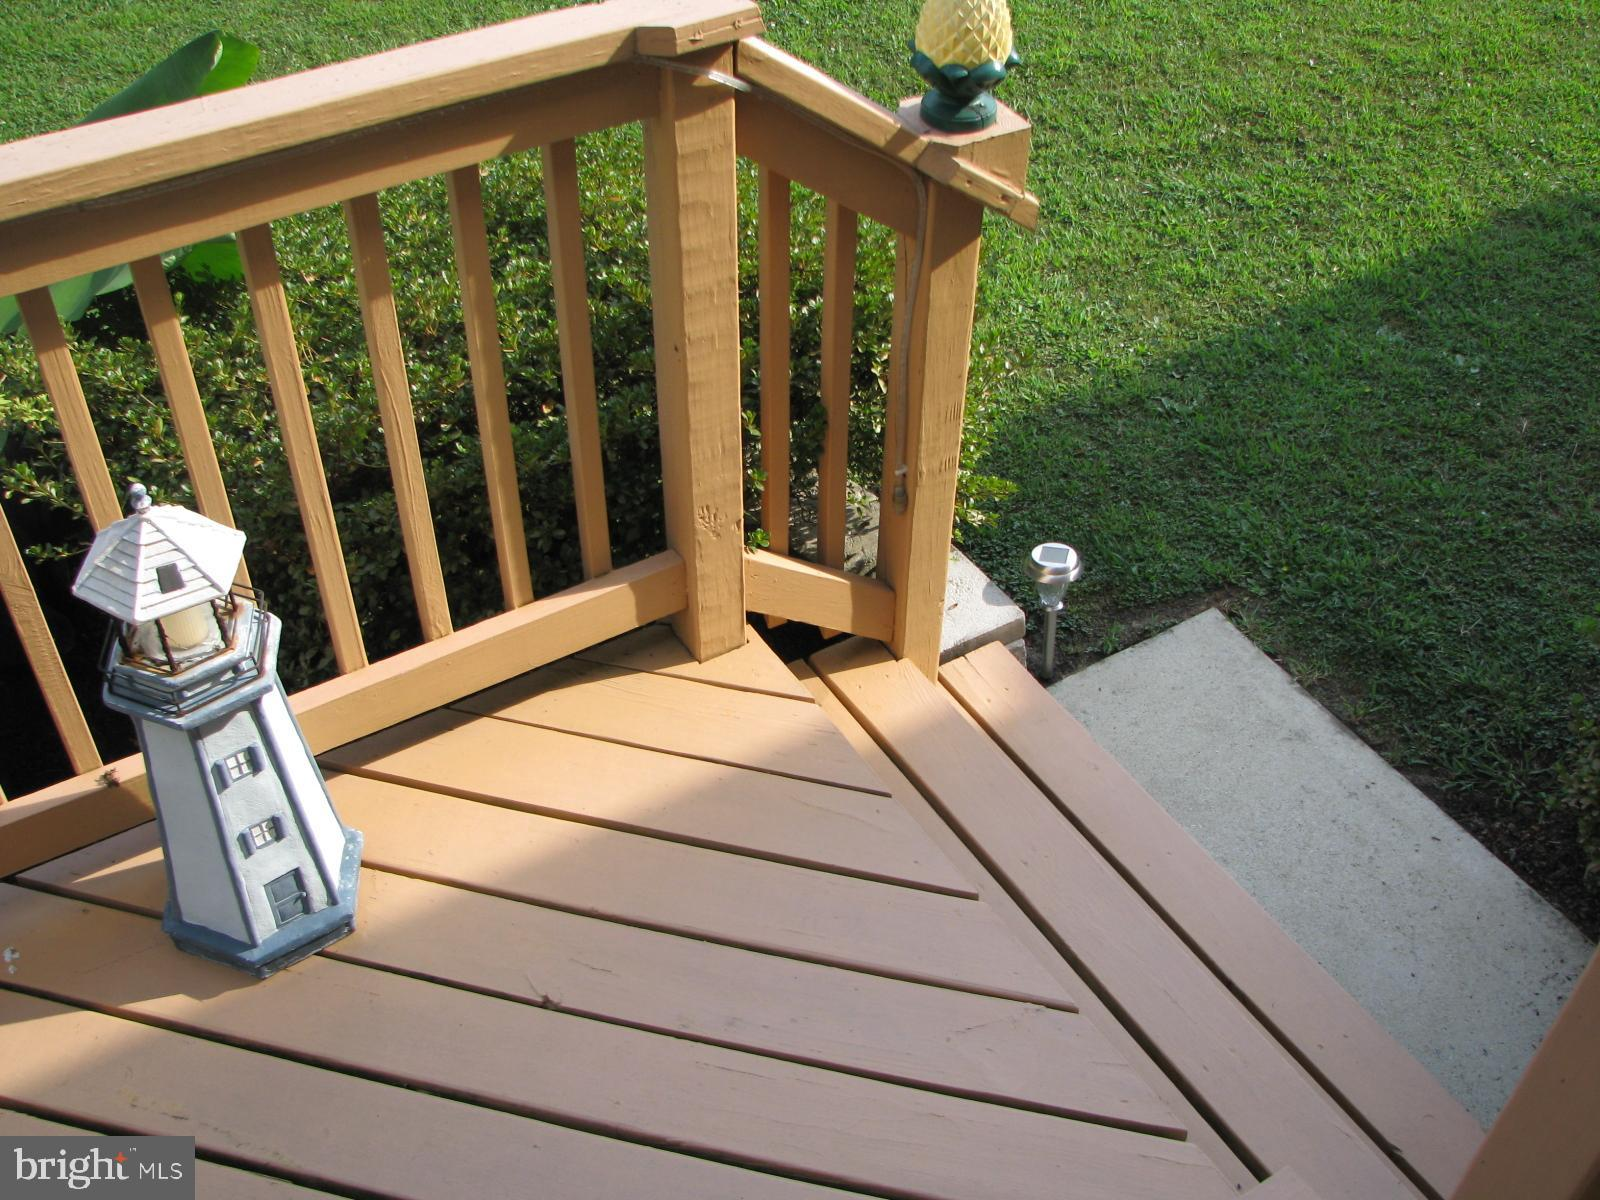 DECK - LOWEST LEVEL